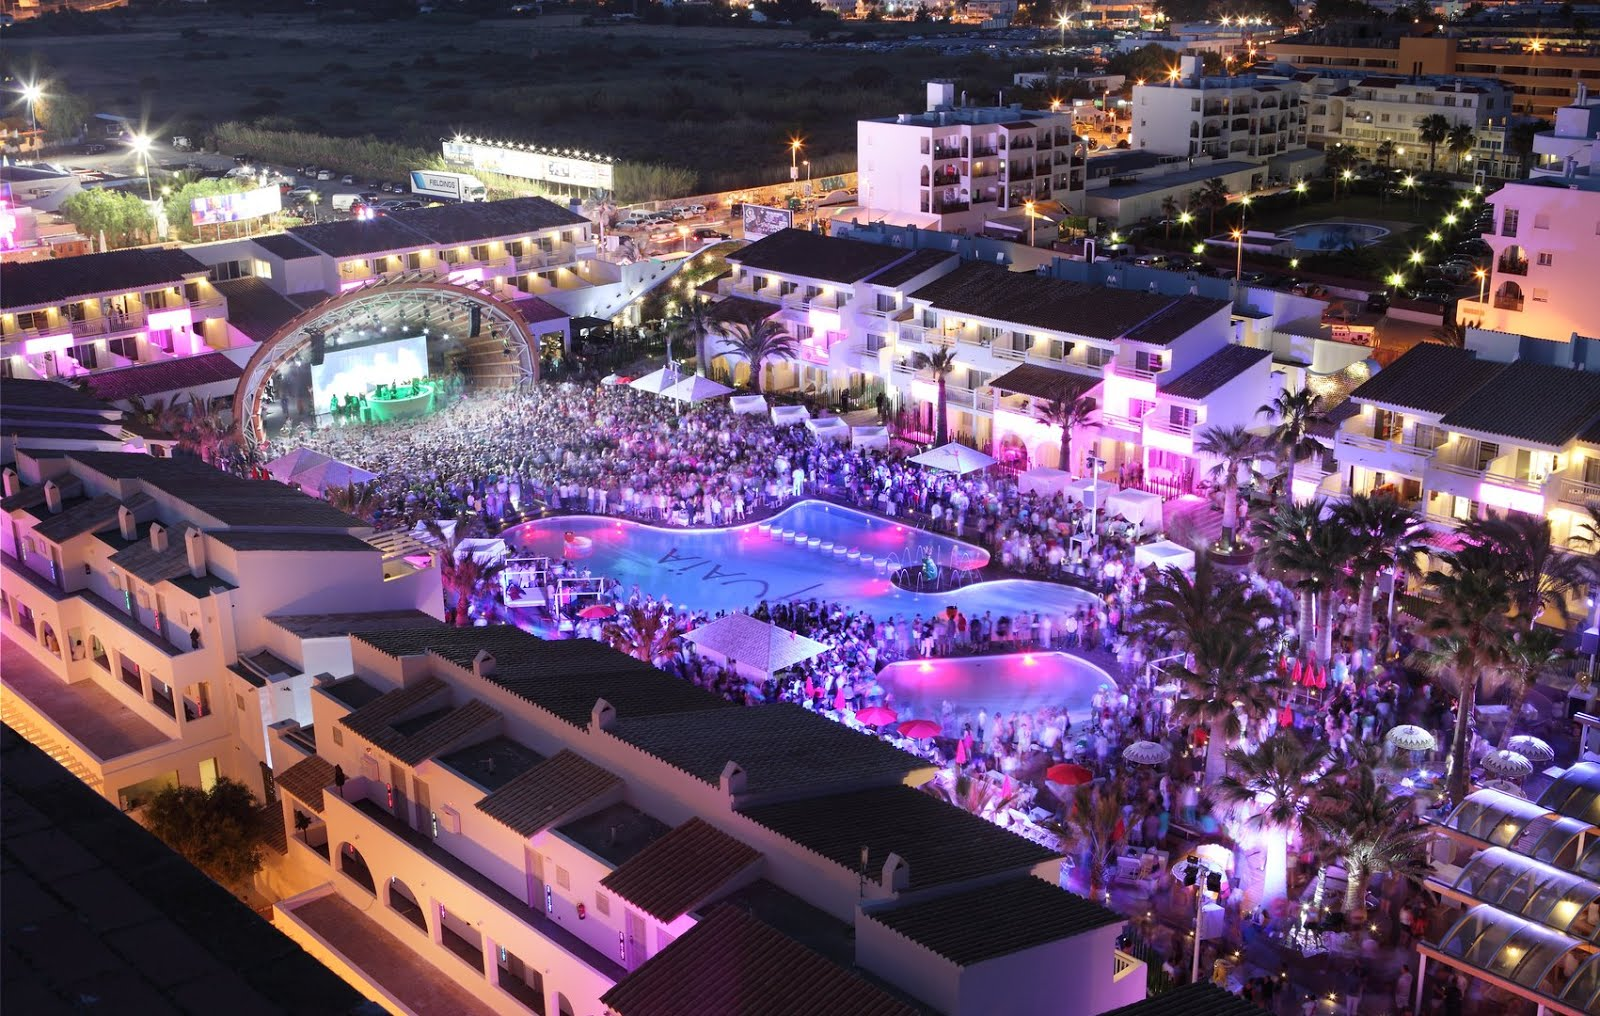 It's Party Time: 10 Nightlife Hot Spots to Go in Ibiza